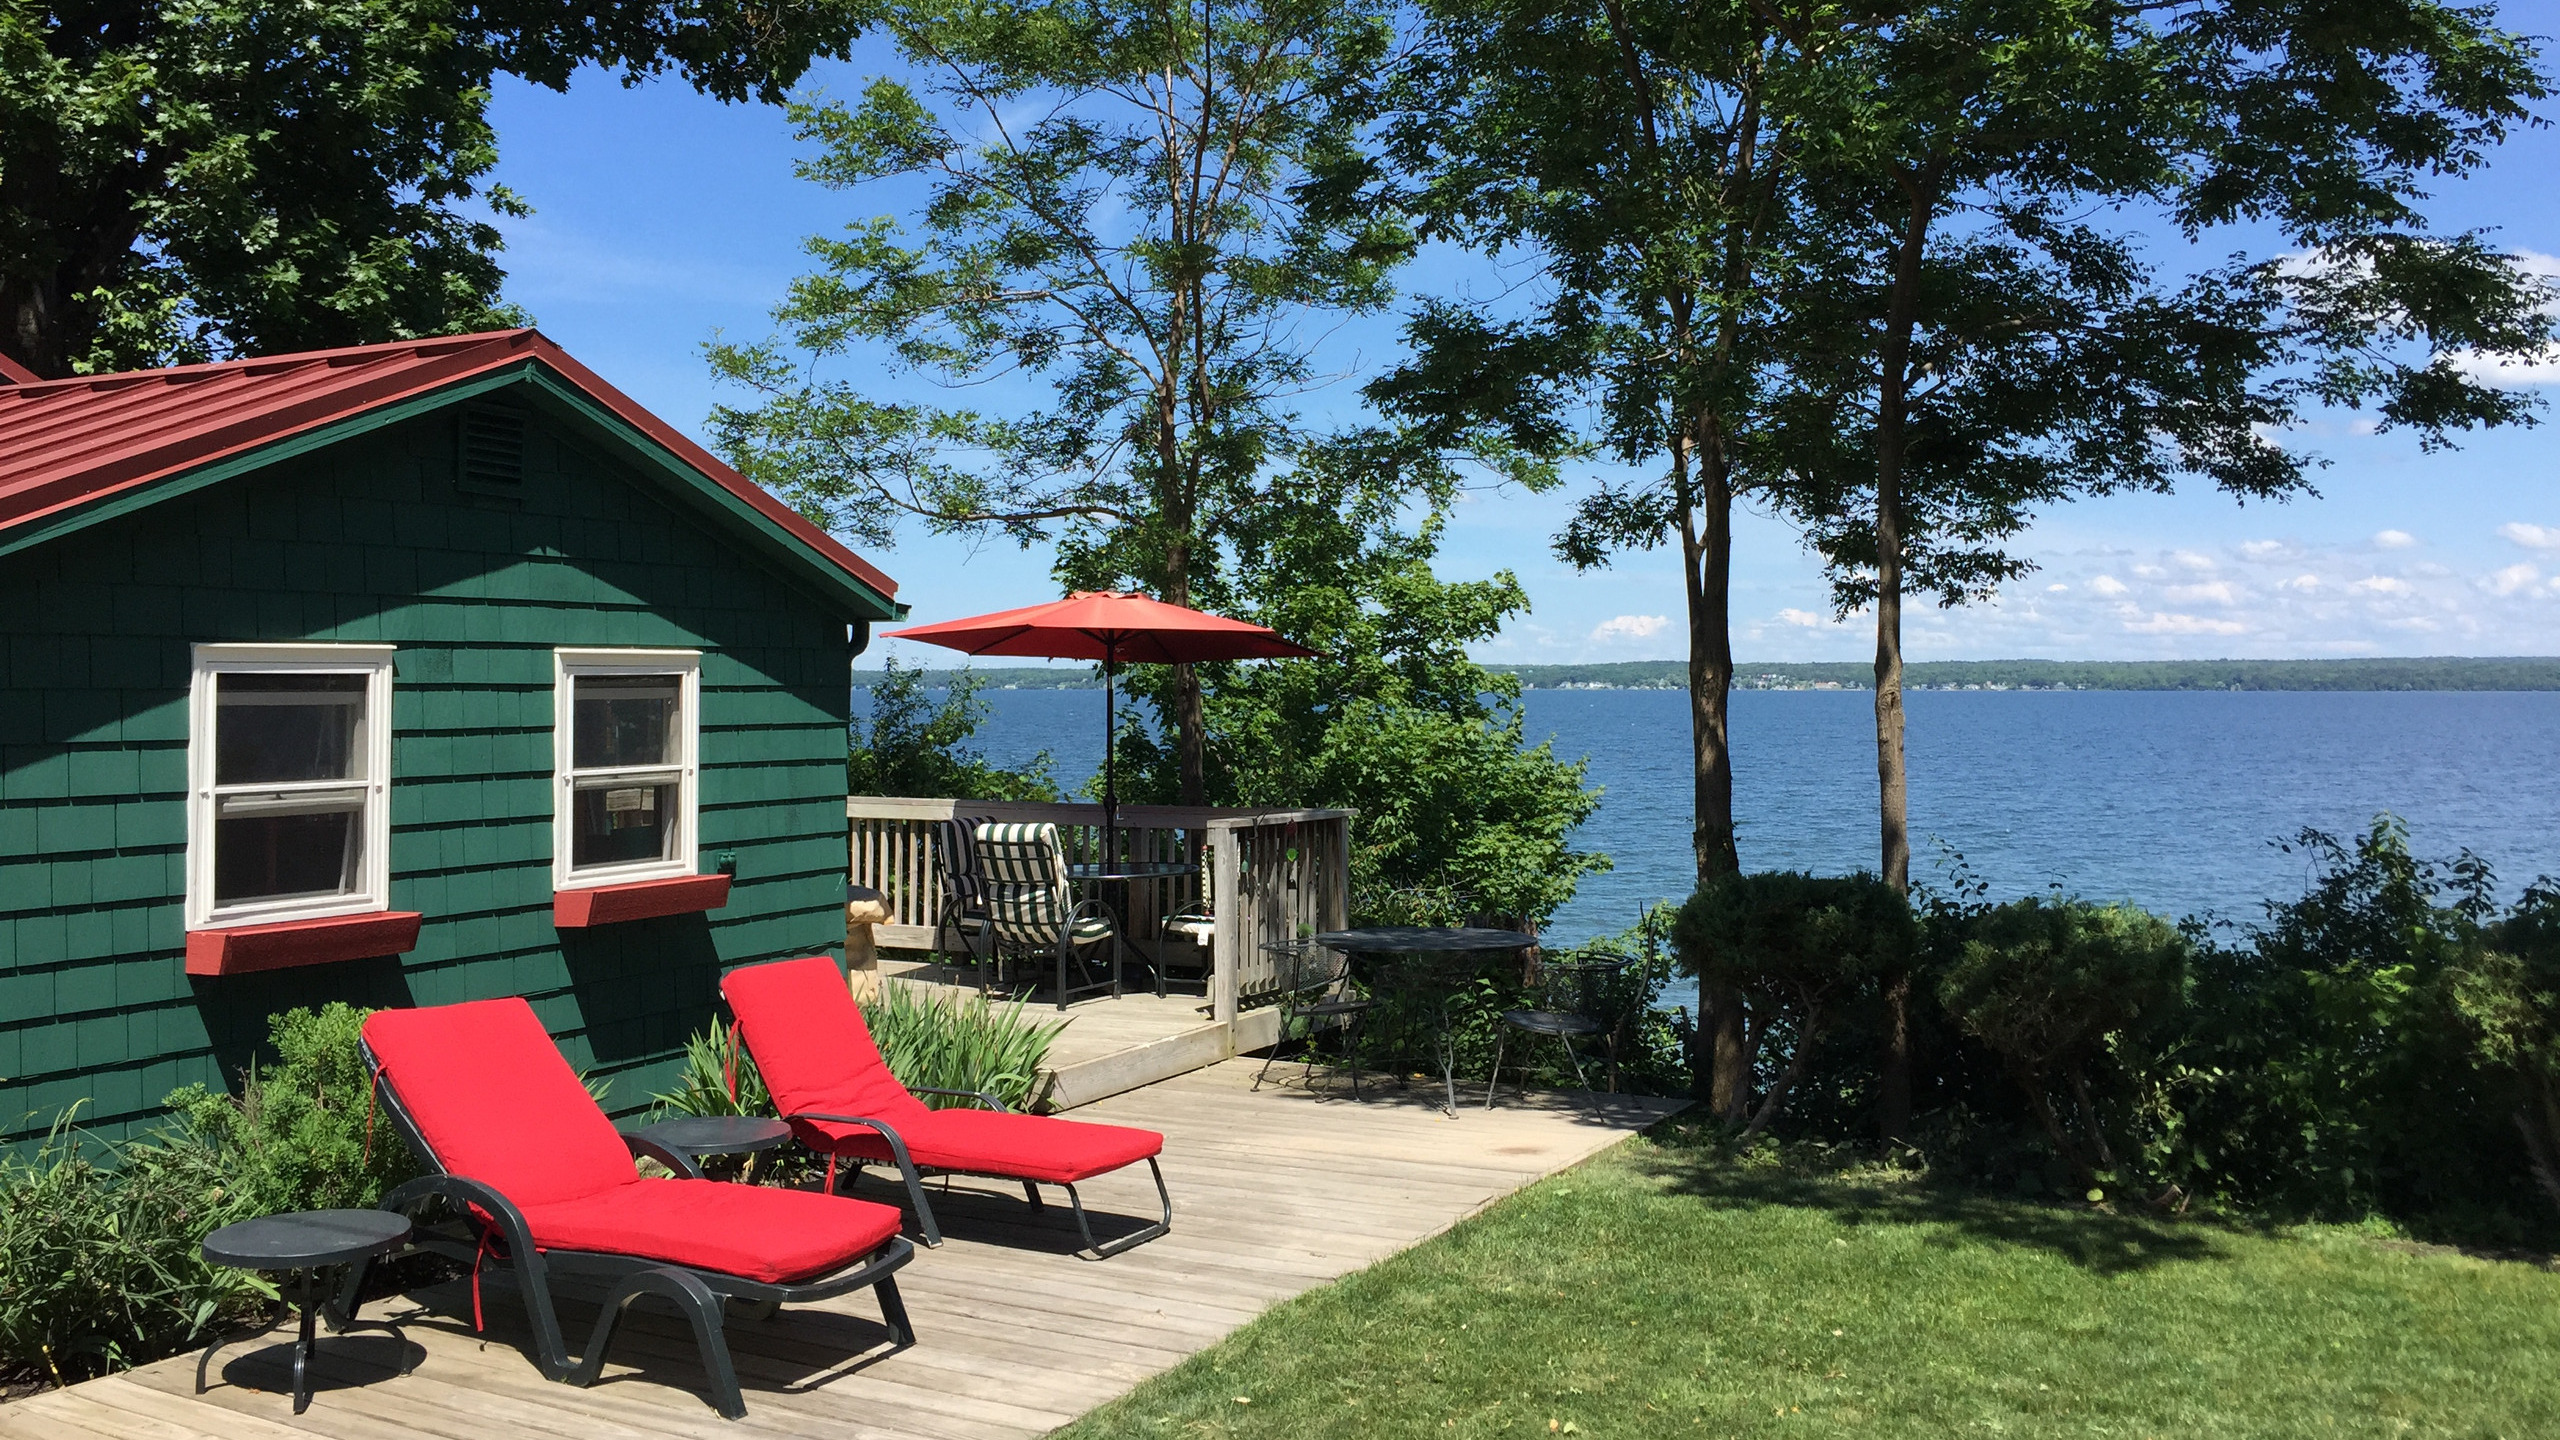 Top places to stay in New York lakefront rentals   Vrbo